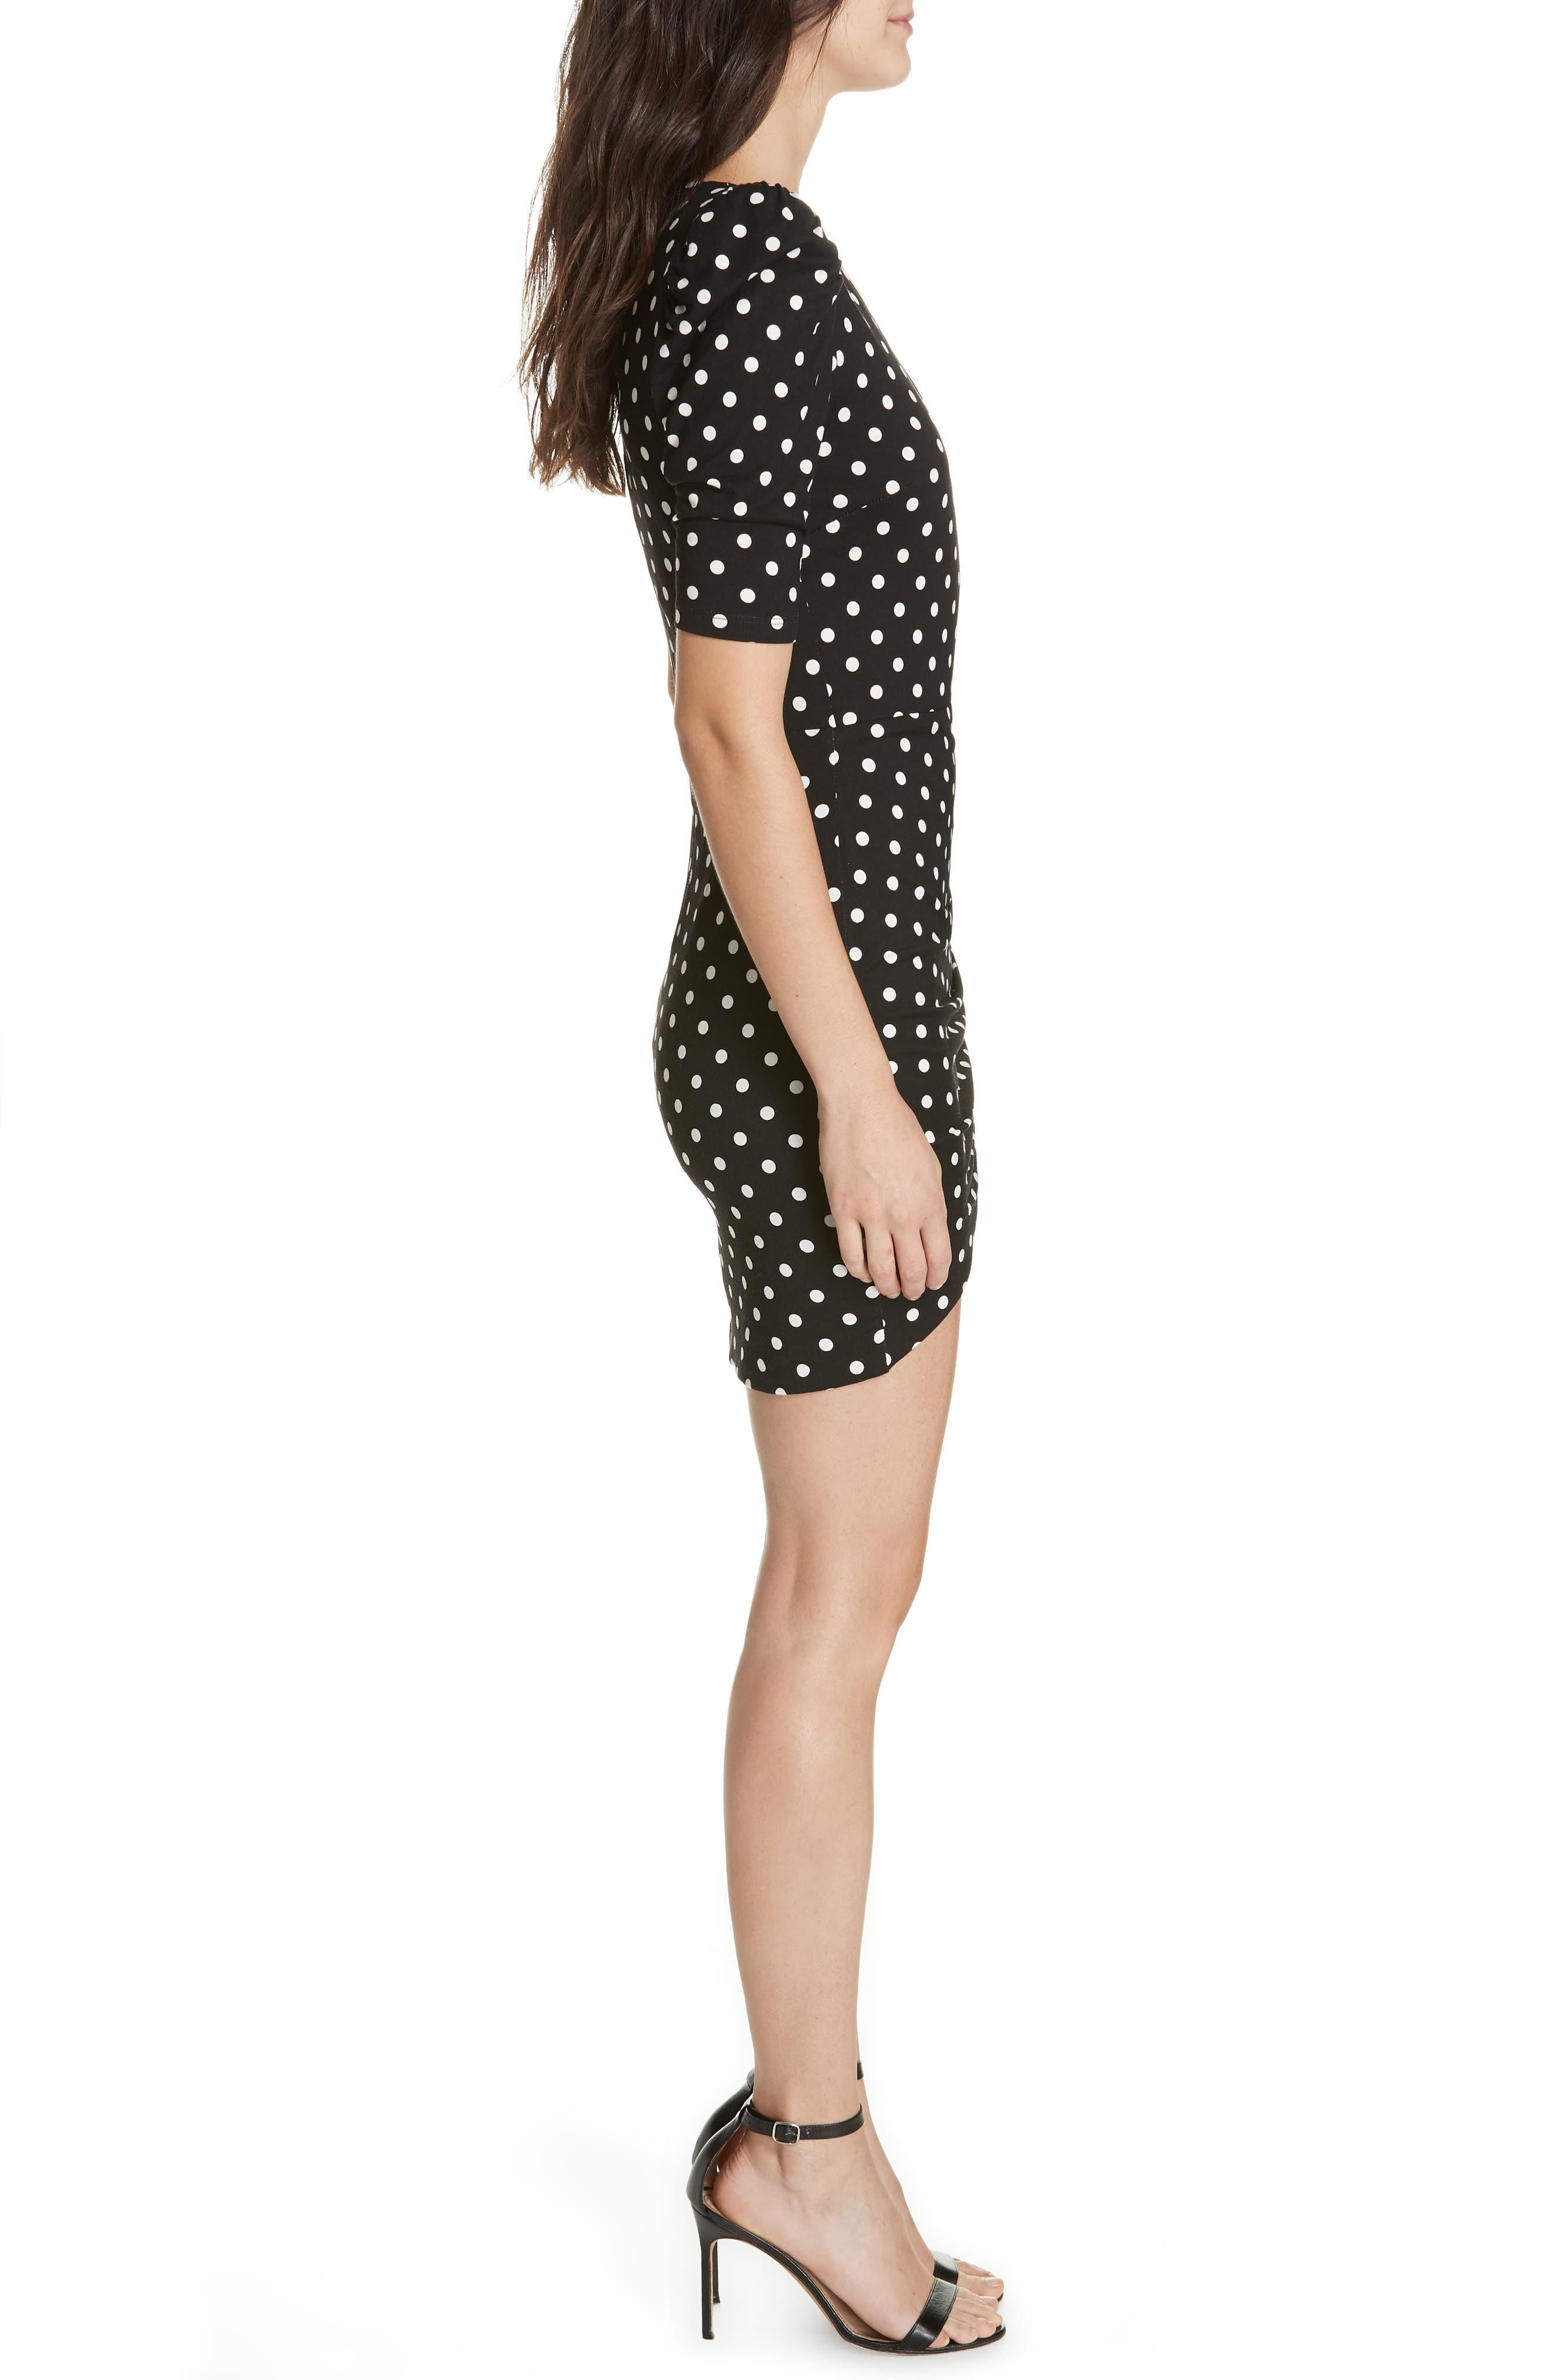 ALICE + OLIVIA, Judy Ruched Faux Wrap Dress, Alternate thumbnail 3, color, 001